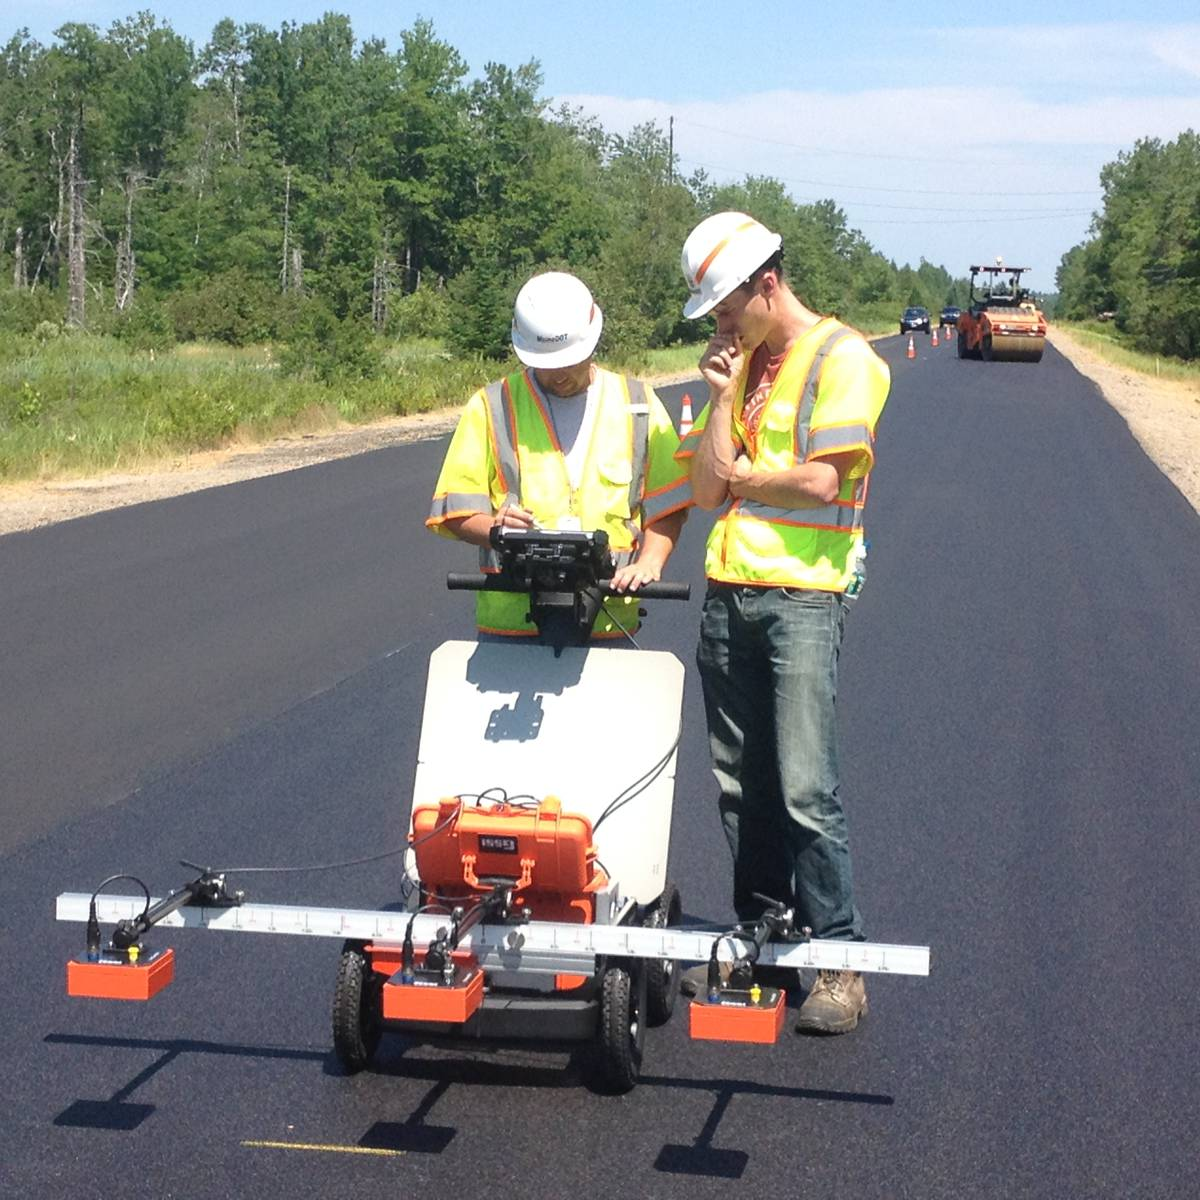 GSSI will showcase their updated GPR Technology at CONEXPO-CON/AGG 2017